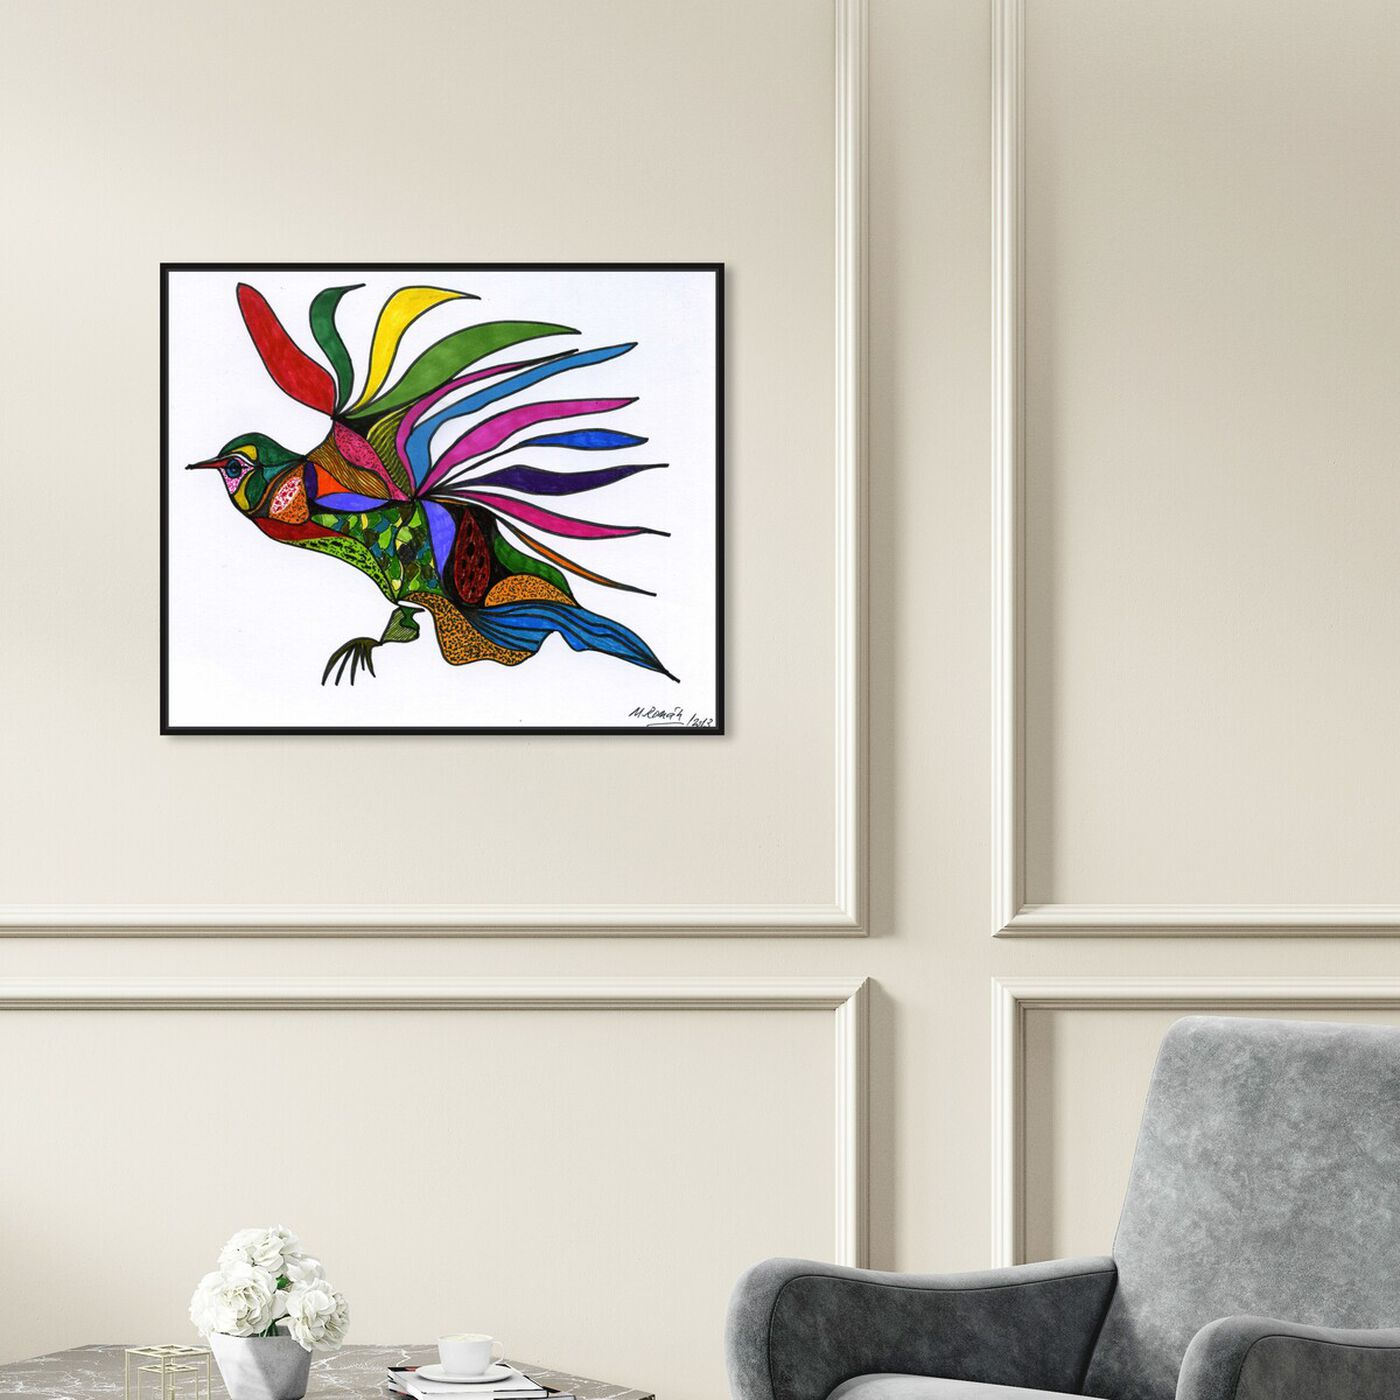 Hanging view of Bird of Paradise featuring animals and birds art.